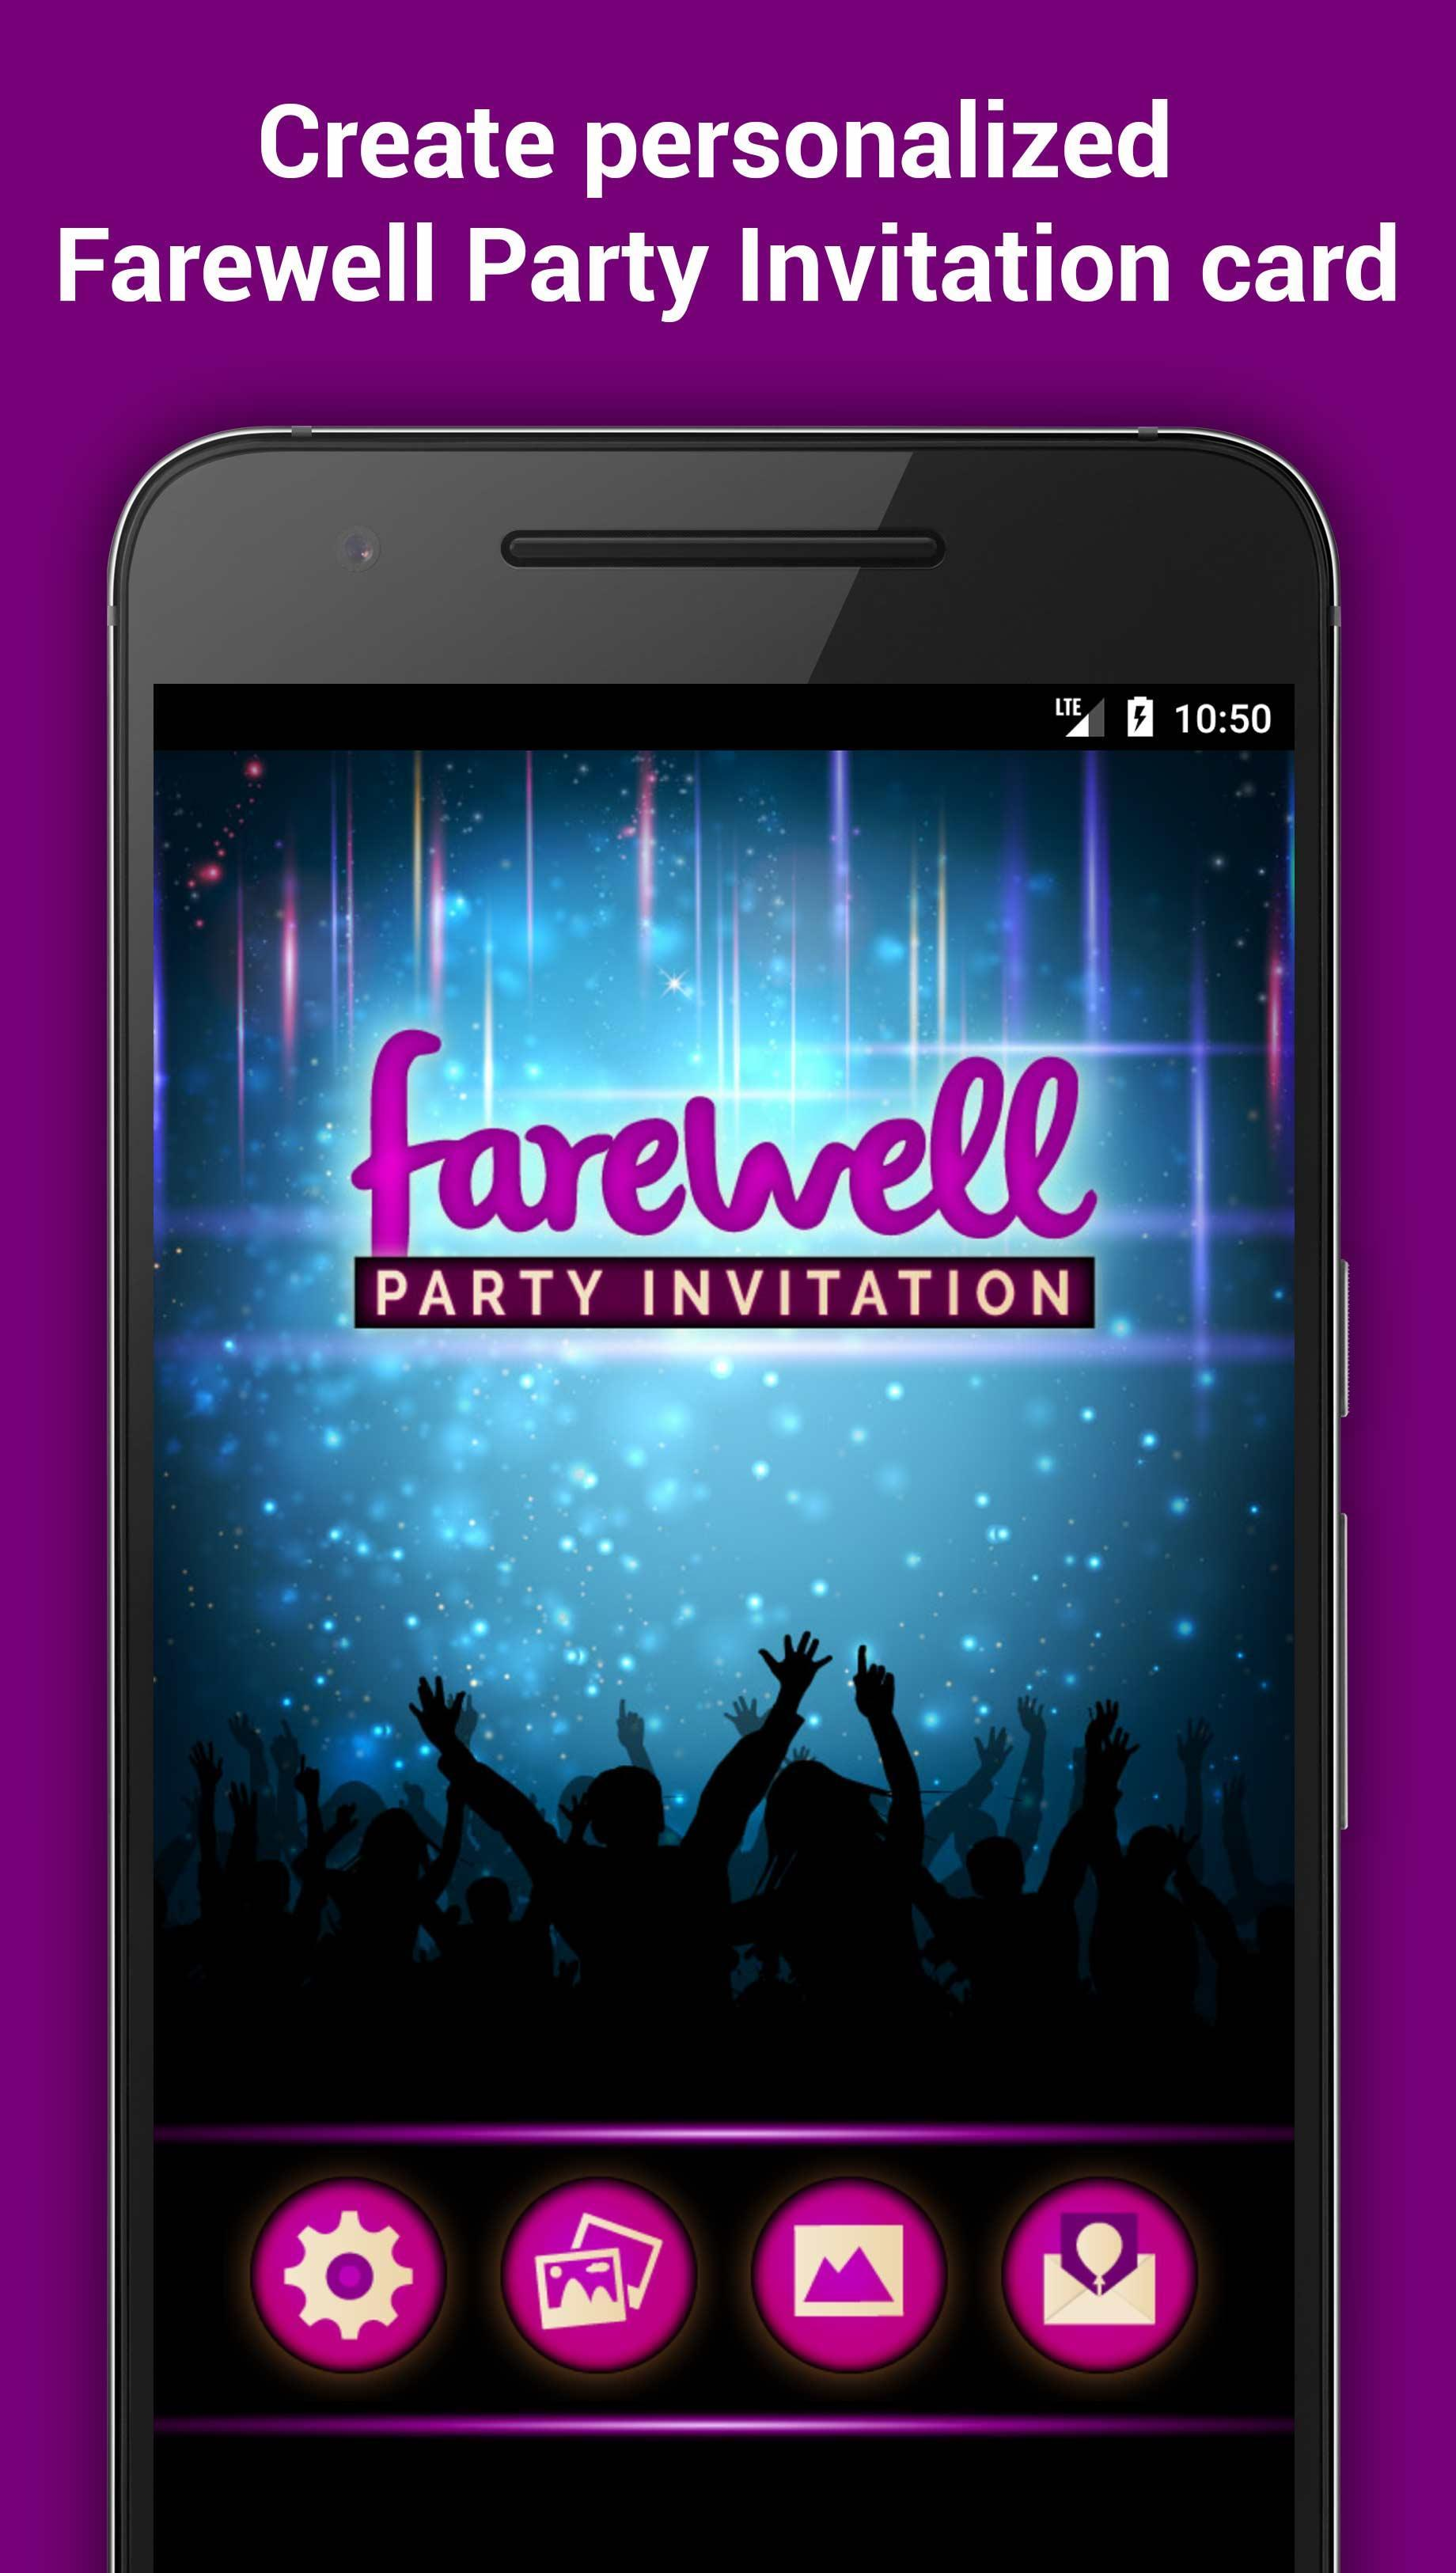 Farewell Party Invitation Maker For Android Apk Download